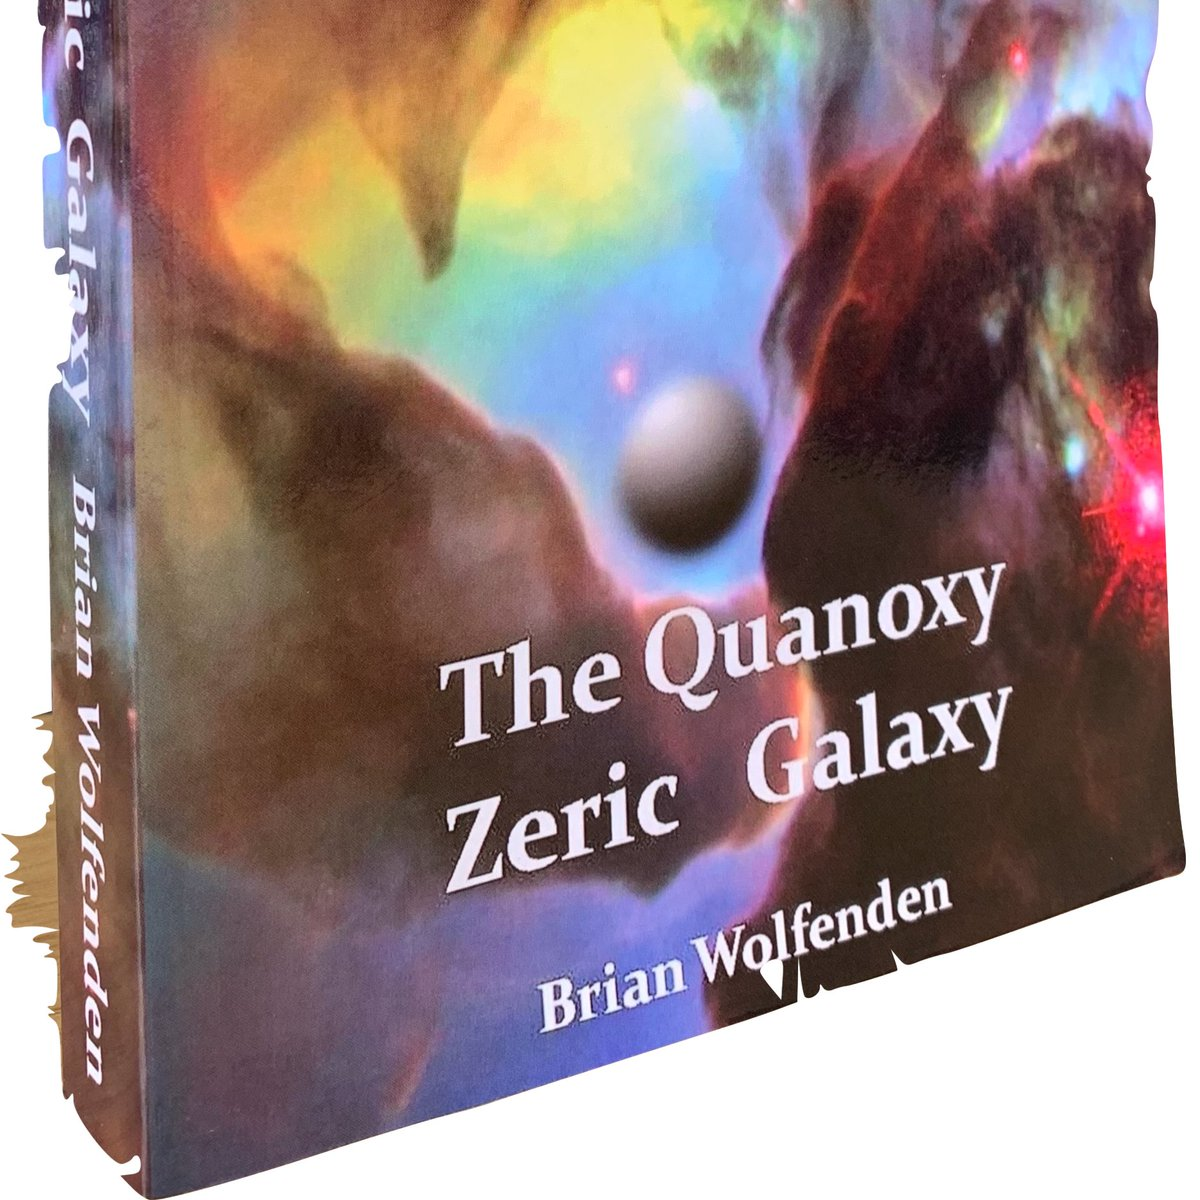 QUEST OF THE DICEPTERONS VOL 3 #scifi -trilogy- #timetravel  An amazing journey into space – discover new life- wake up the unimaginable - bring it back to Earth!  Web-     Trailer -   via @YouTube Buy -